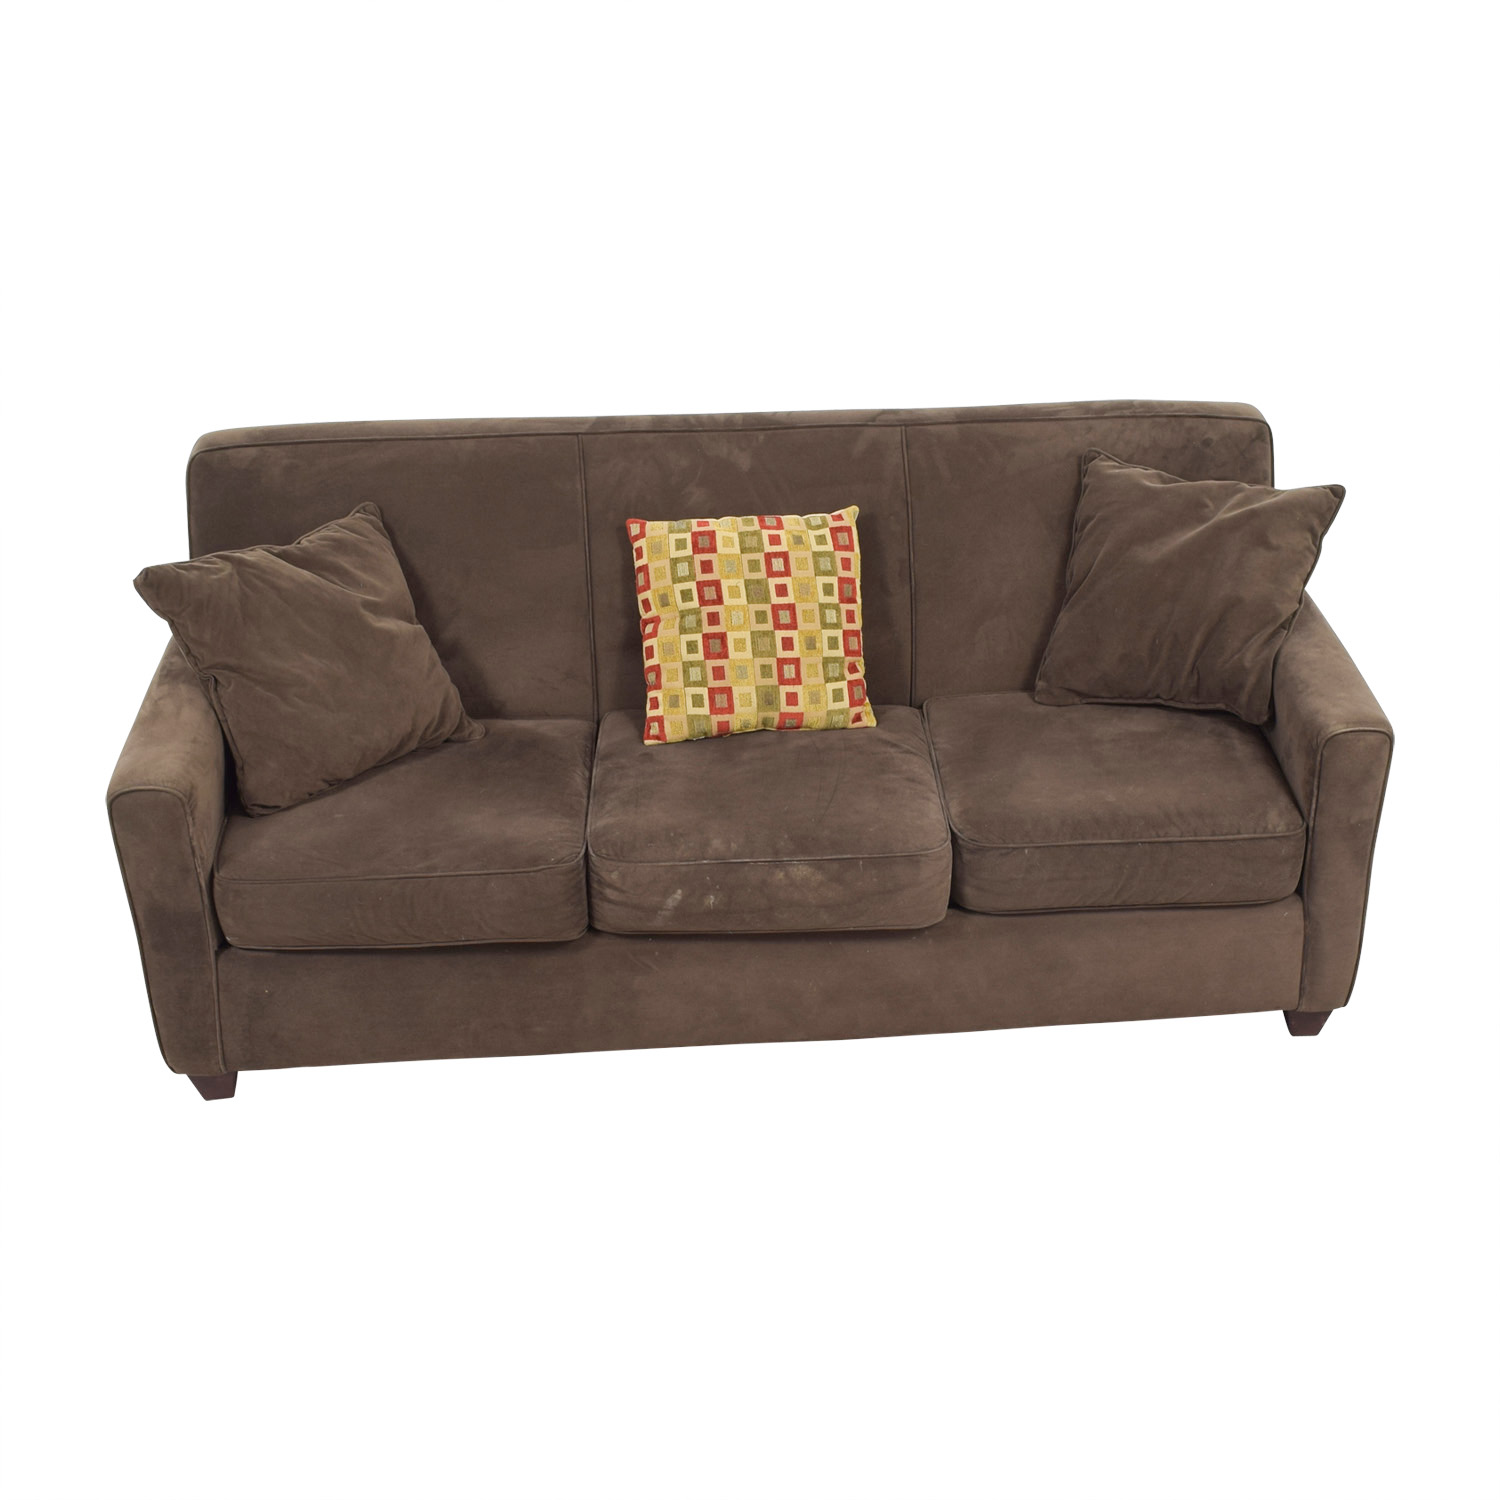 Raymour & Flanigan Brown Three-Cushion Sofa / Classic Sofas